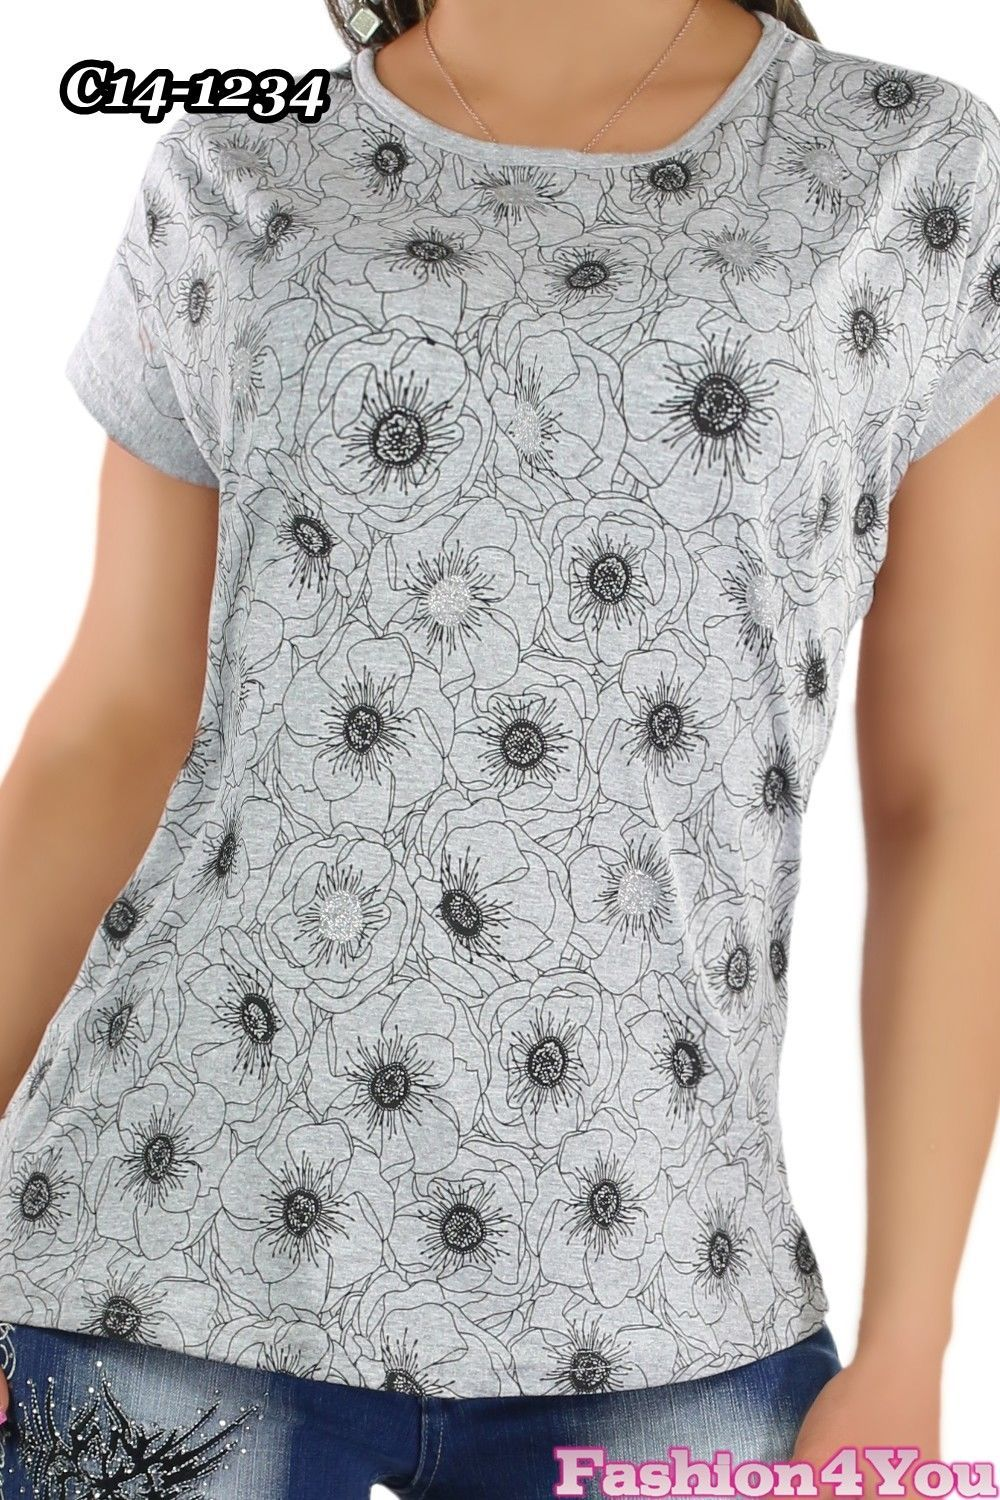 Women's Top Ladies Summer Holiday Casual Tunic Top T-Shirt Size 10,12,14 UK